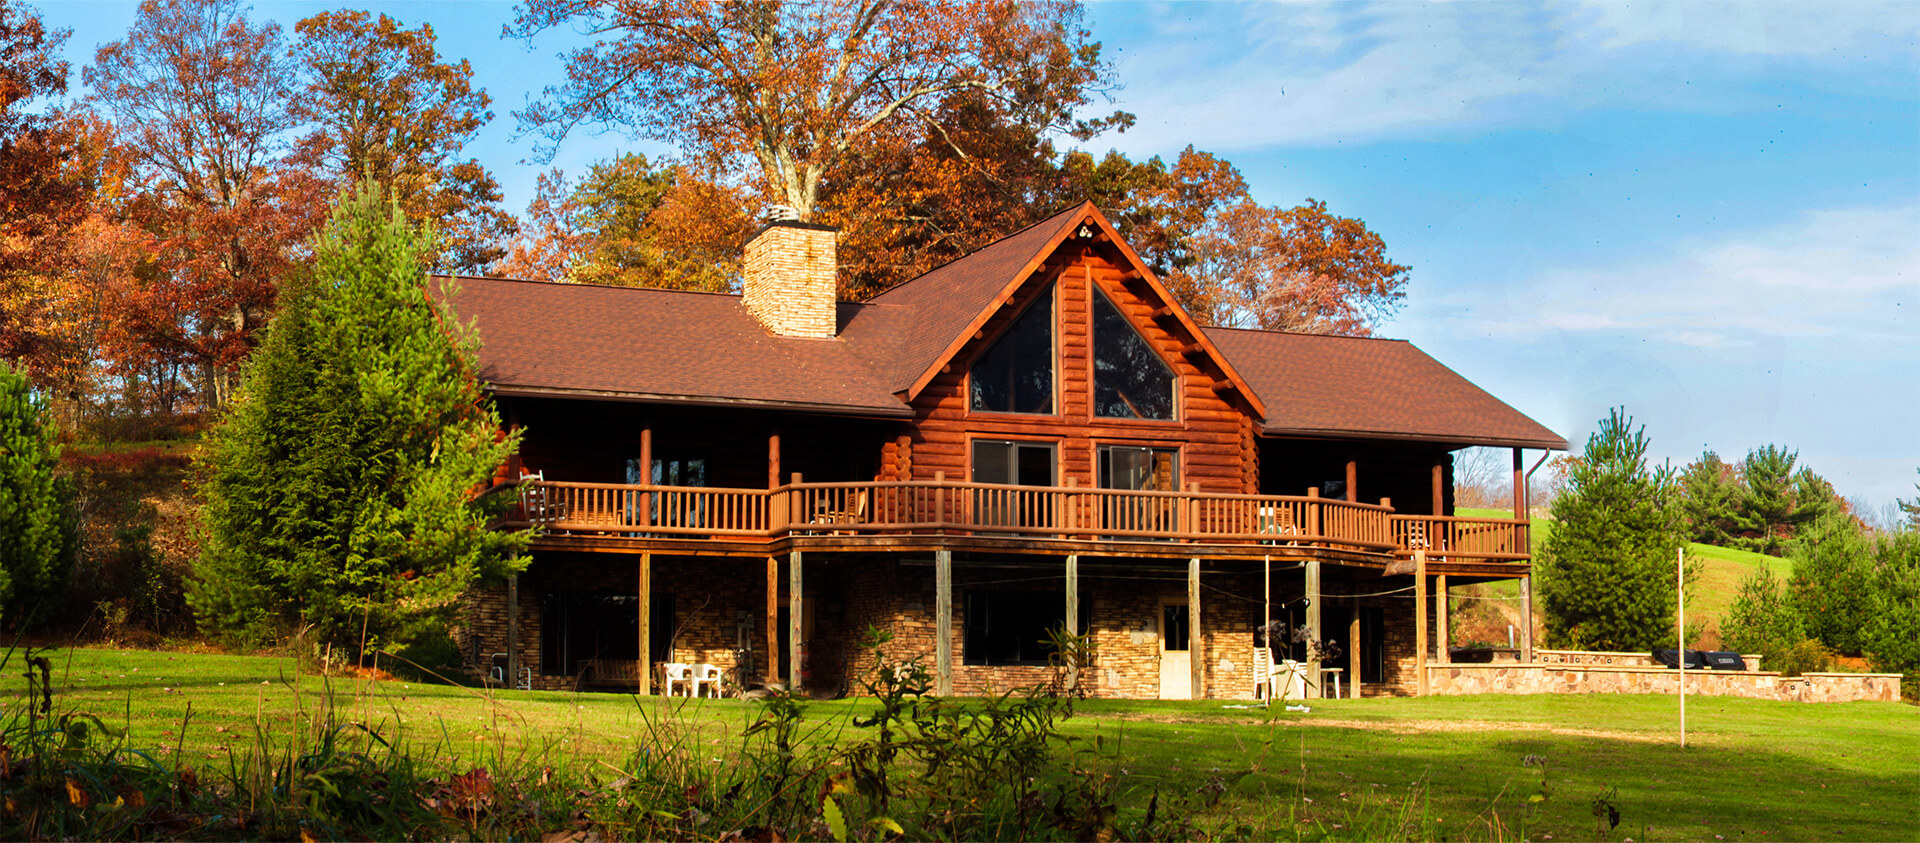 family lodge lodging friendly mountains hotels cedar ozark photos best cabin of kid getaways awesome collection amp poconos cabins big in romantic the fresh pa